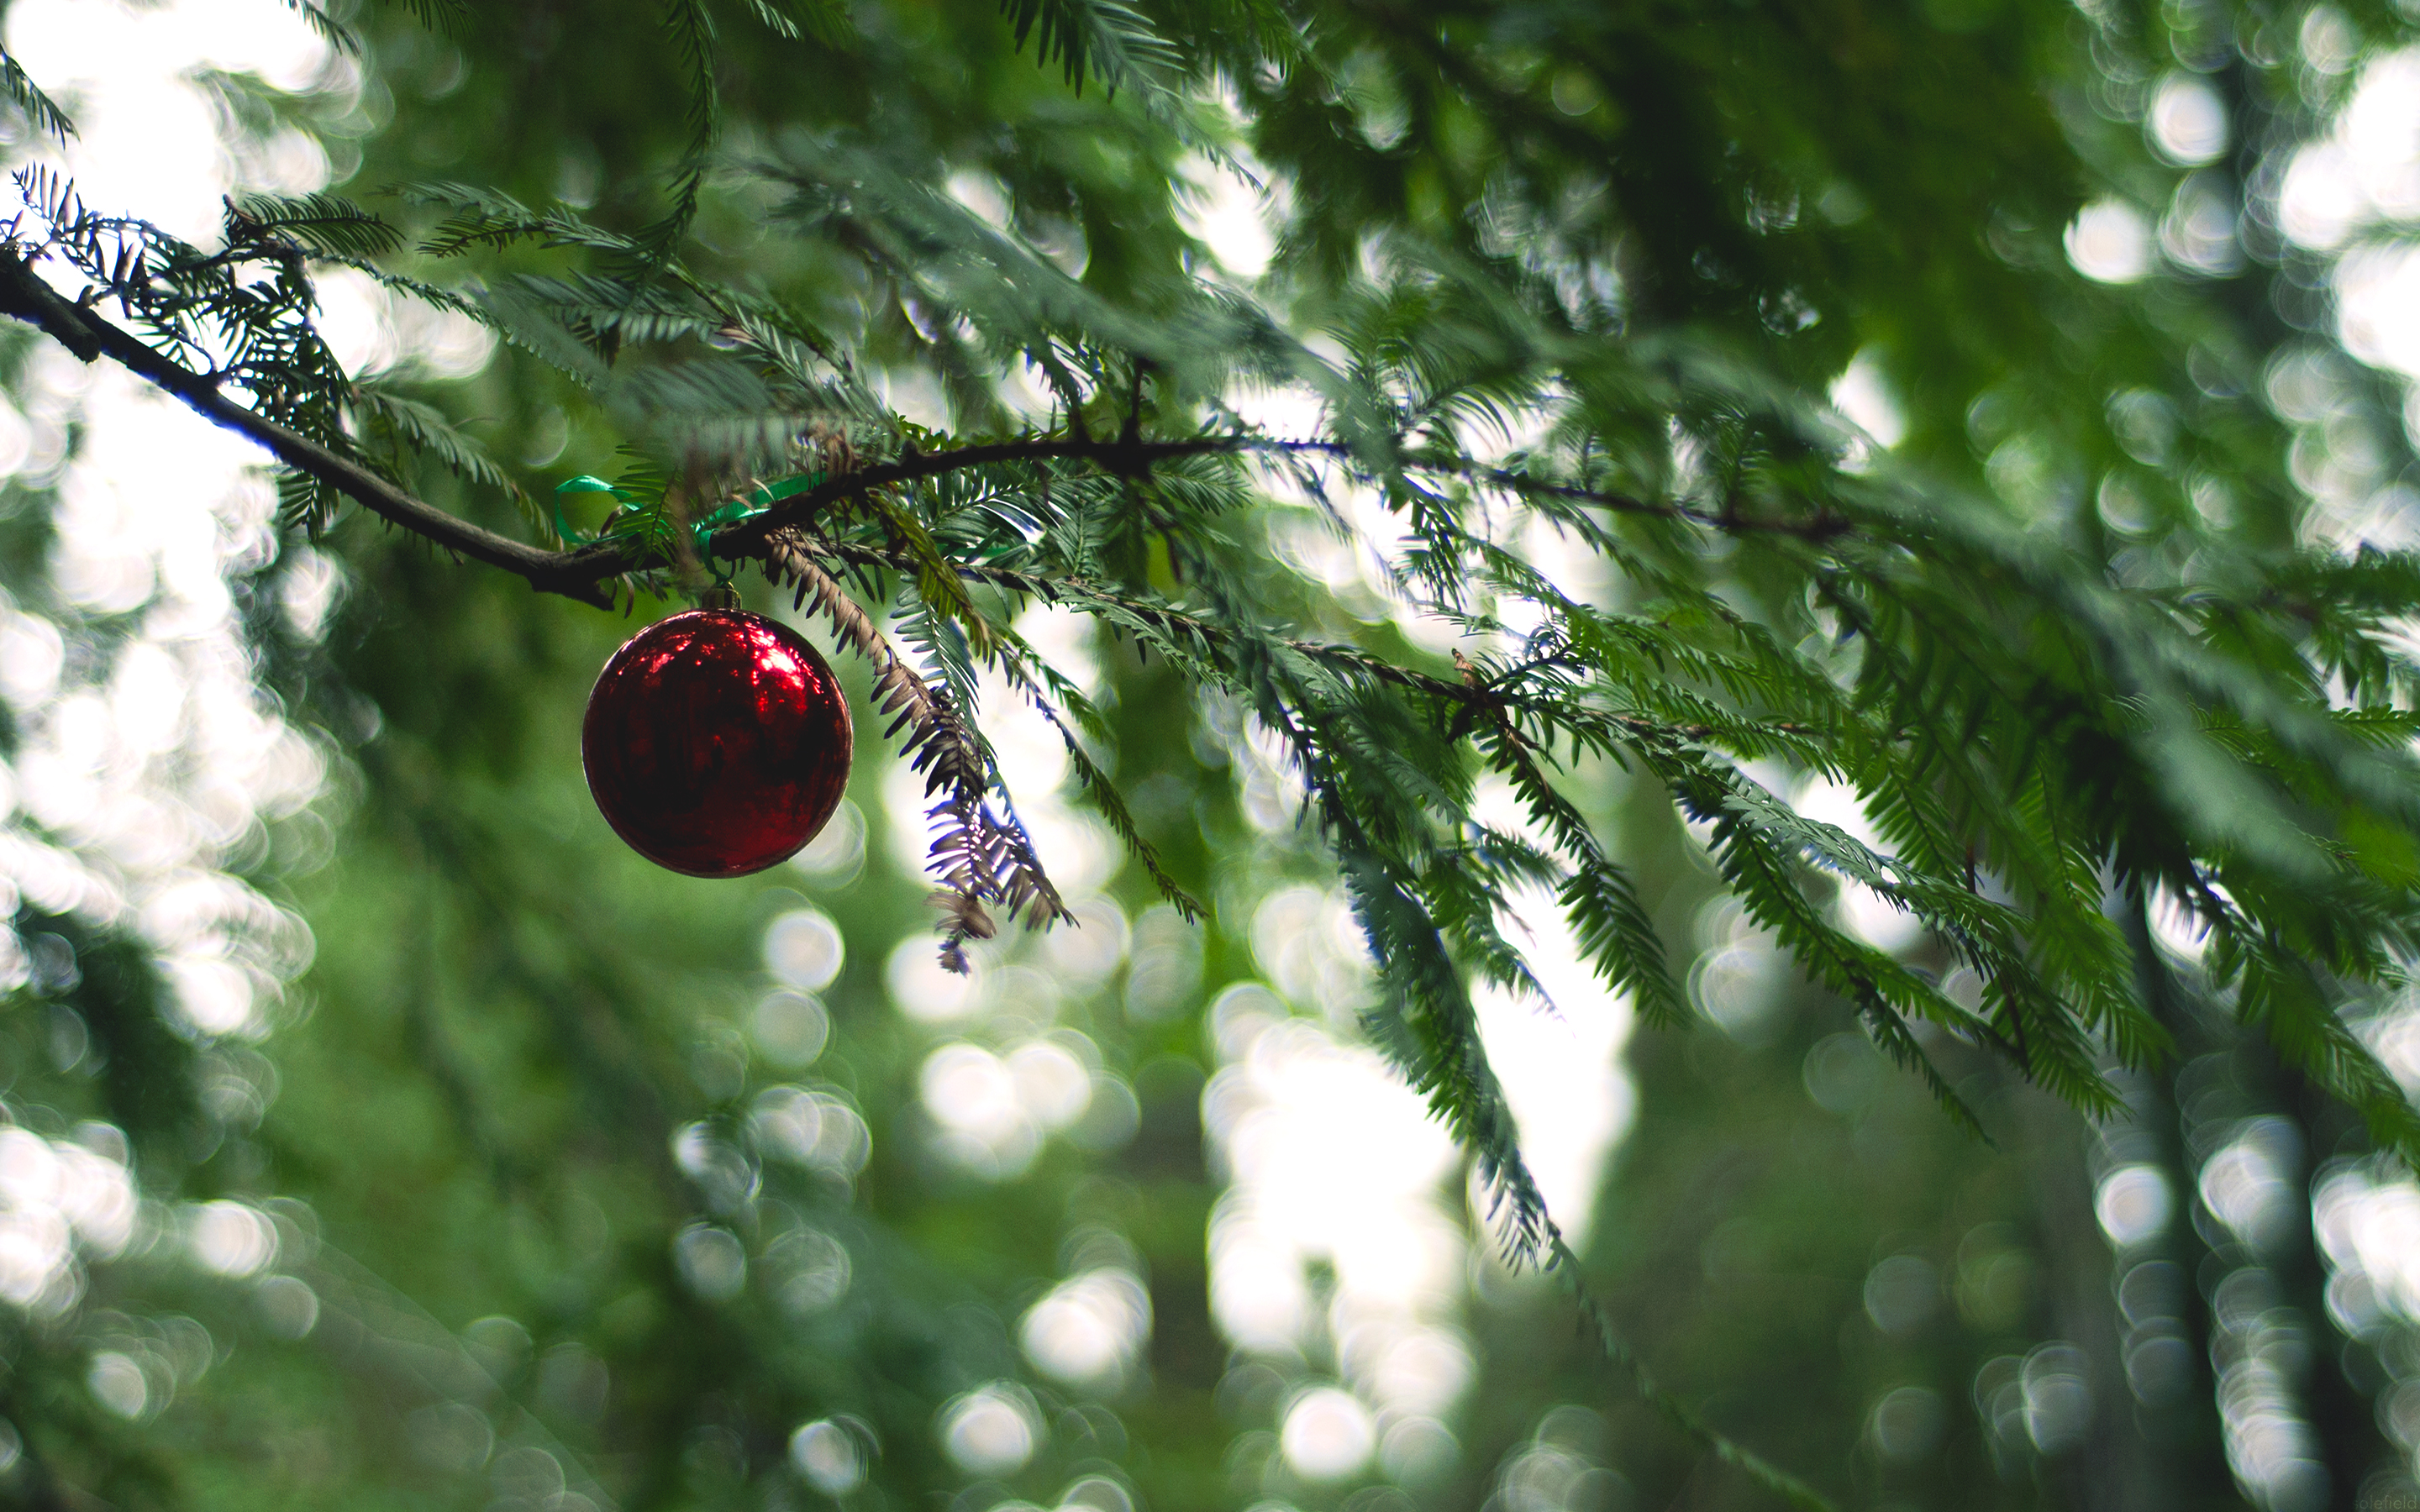 Christmas Ornament in a Forest